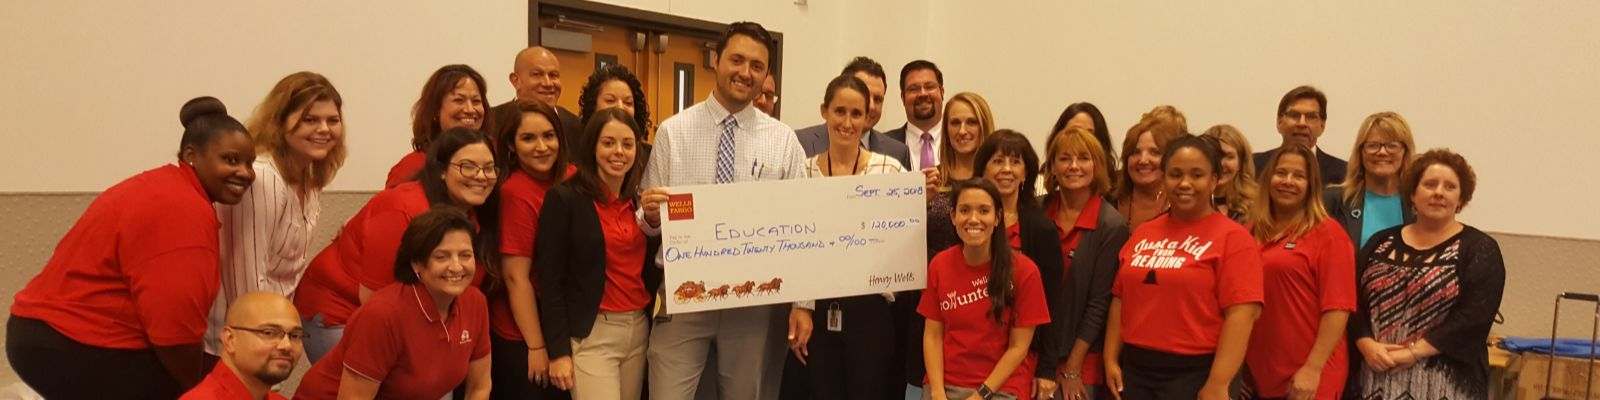 Wells Fargo Donation at Amanda Stoudt School in the City of Reading